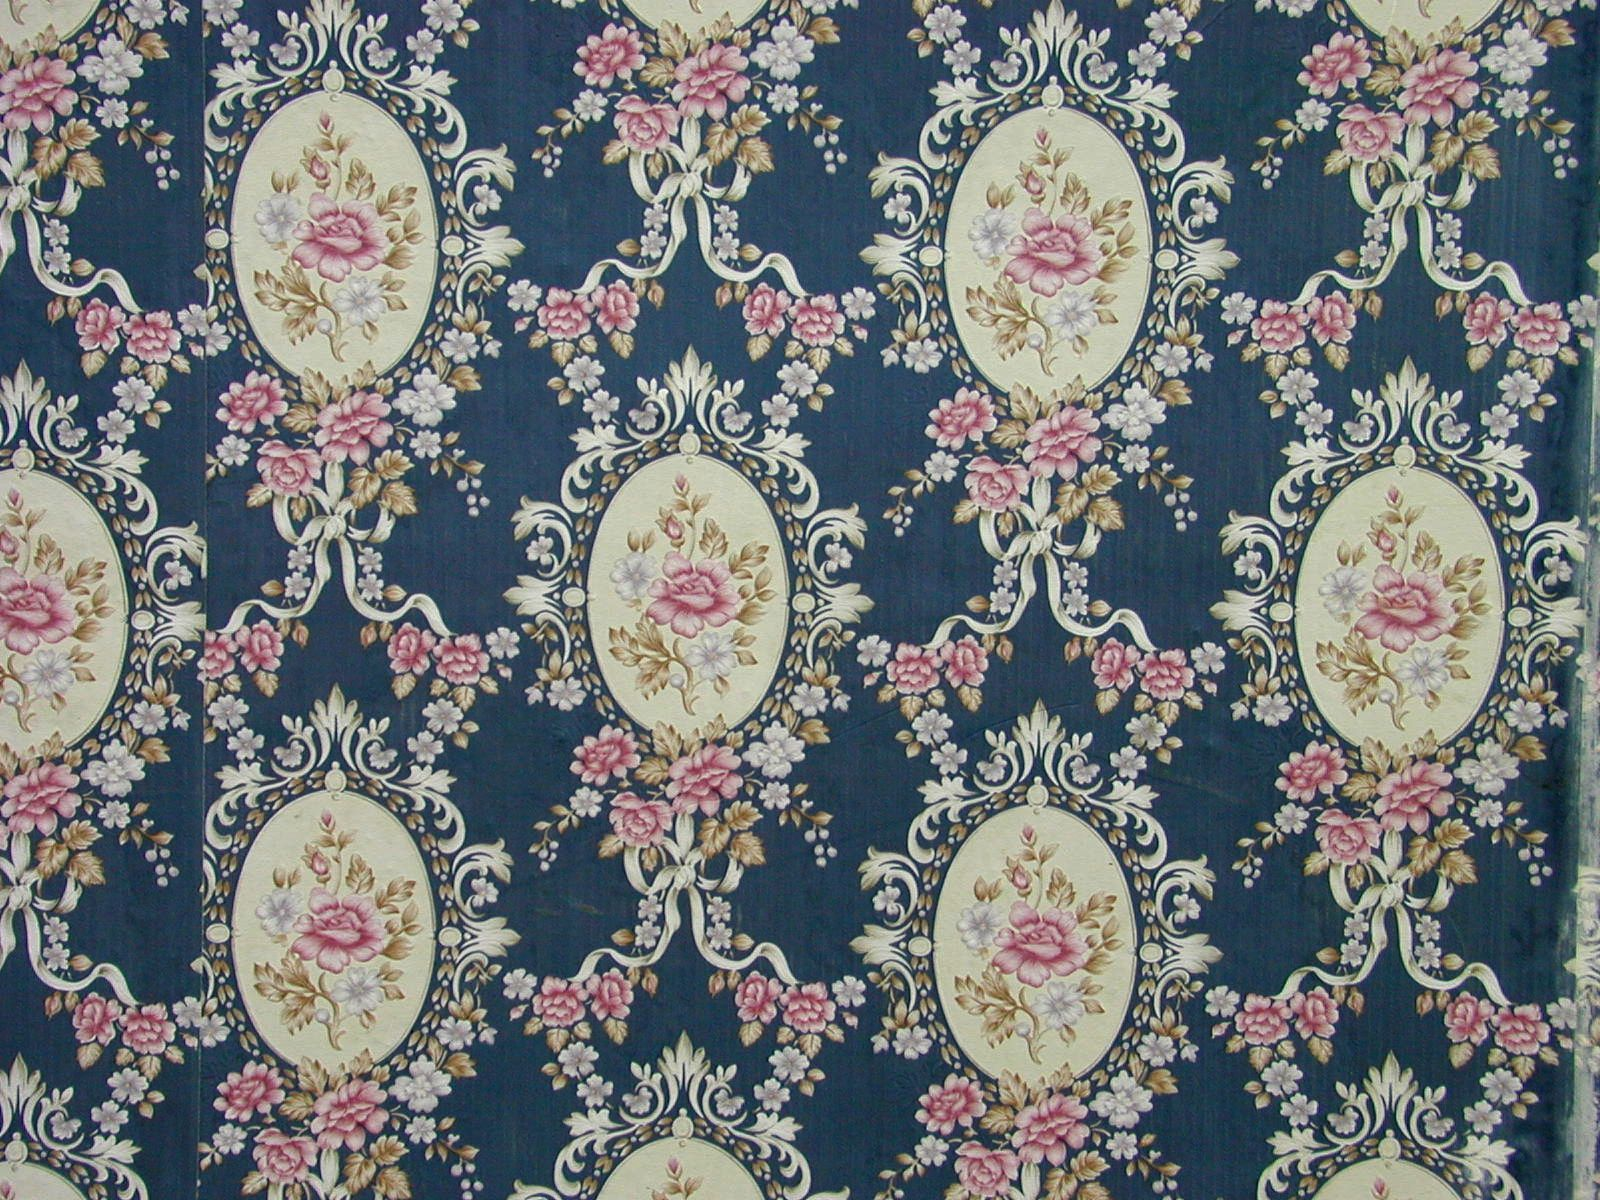 image detail for image after texture wallpaper paper wall texture victorian flower - Flower Wallpaper For Walls